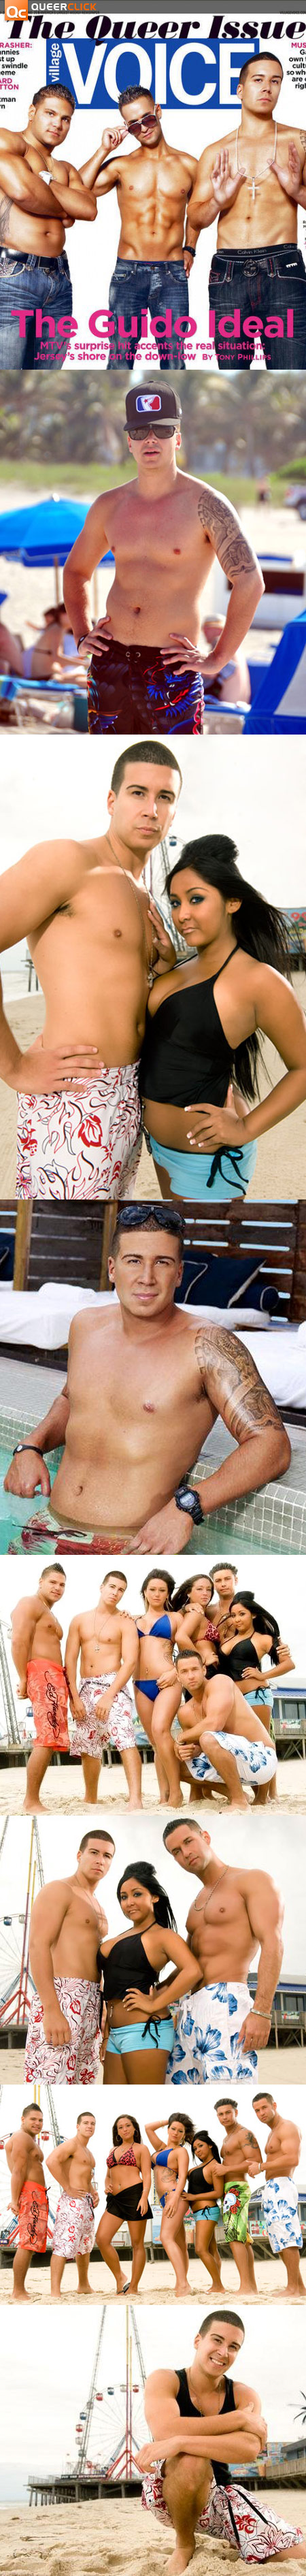 Jersey shore vinny naked in playgirl sorry, that